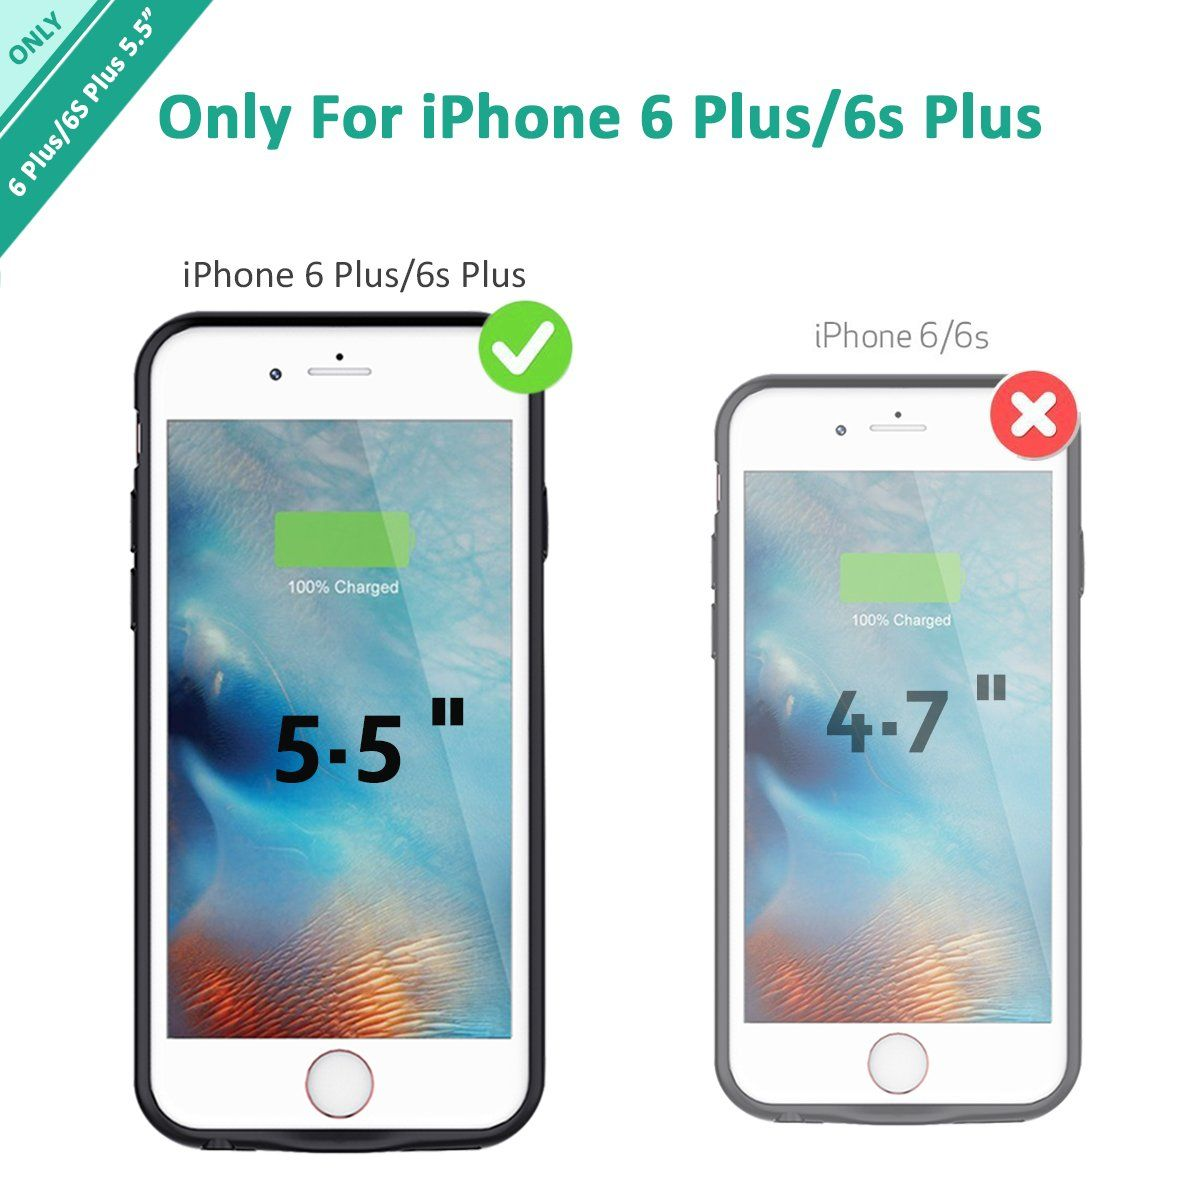 competitive price d3f89 a4865 iPhone 6s Plus/6 Plus Battery Case Stoon 7200mAh Portable Charger ...